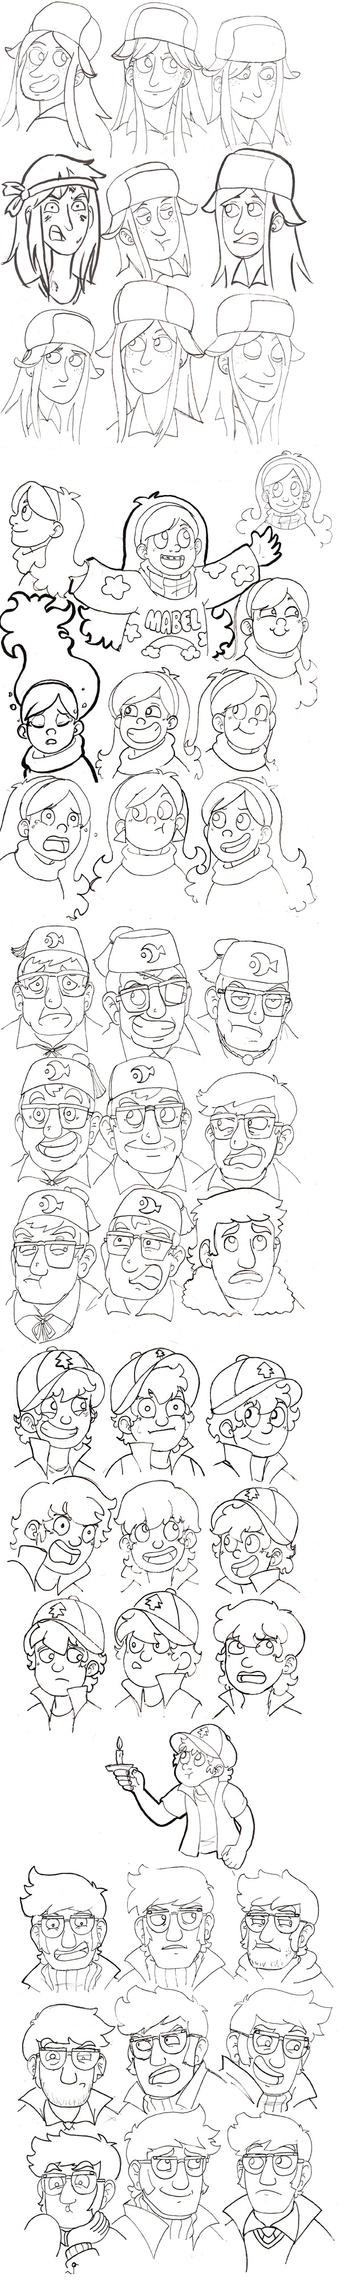 Gravity Falls Faces - line art by batteryfish